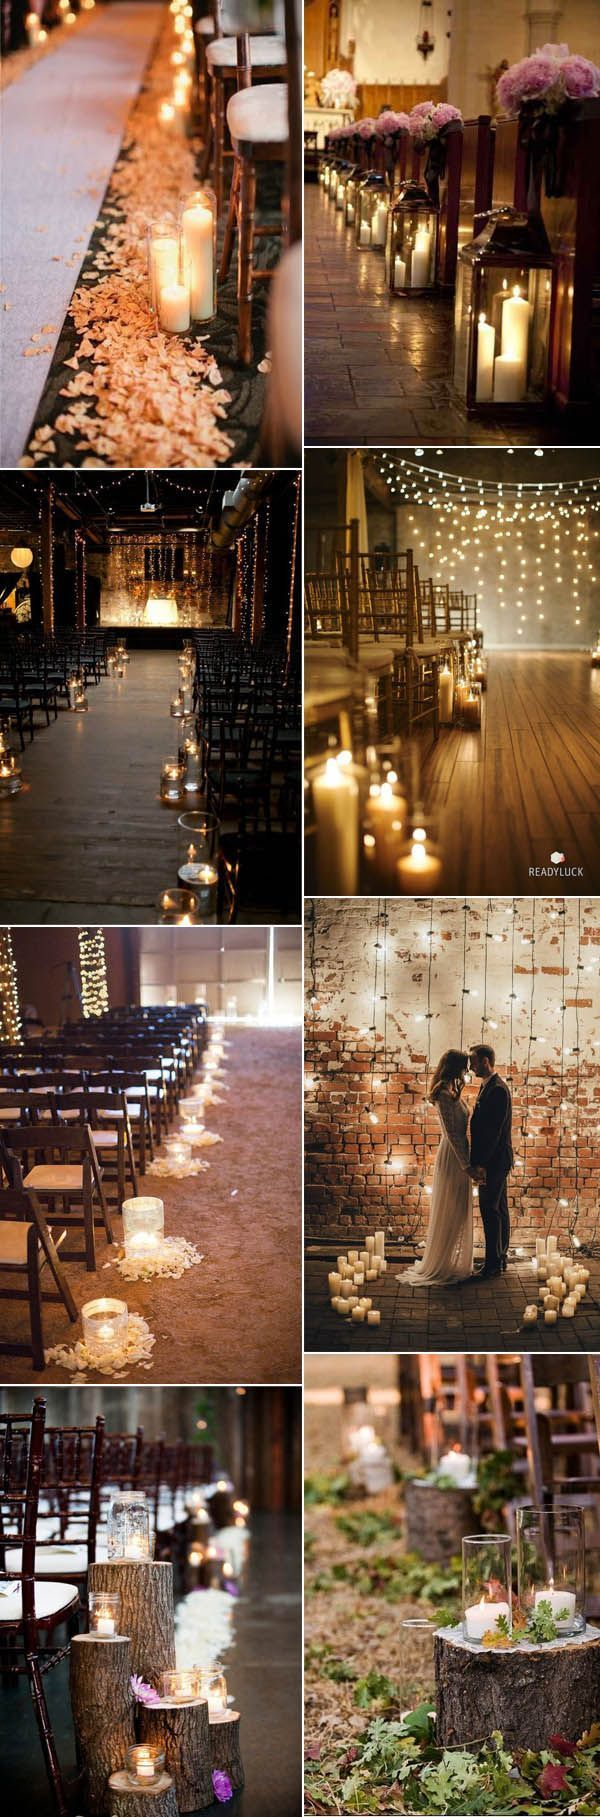 church wedding decorations candles%0A beautiful wedding ceremony aisle decoration ideas with candle lights